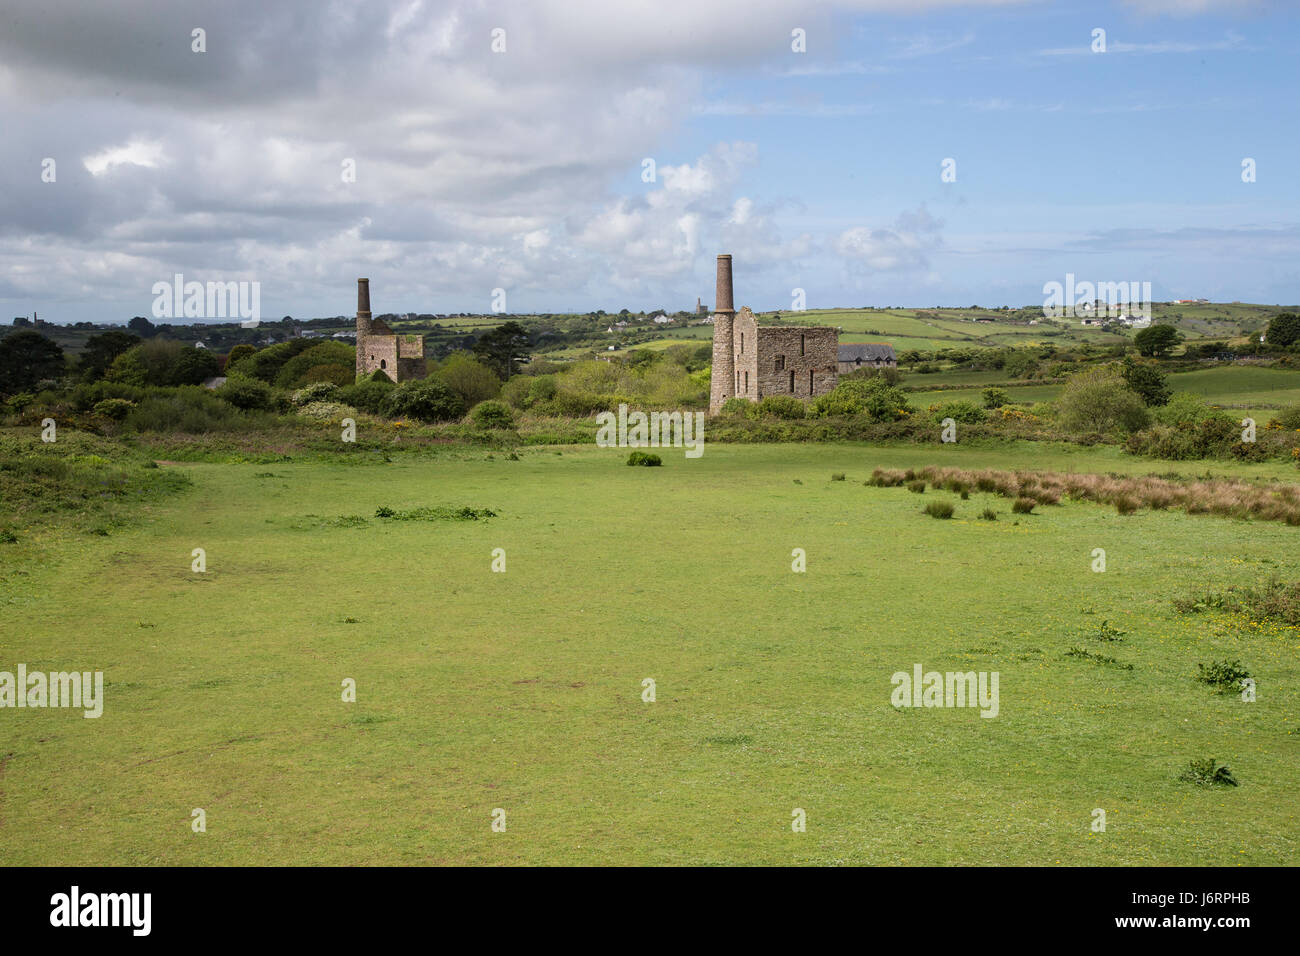 Disused tin mines on Cornwall's Great Flat lode trail - Stock Image